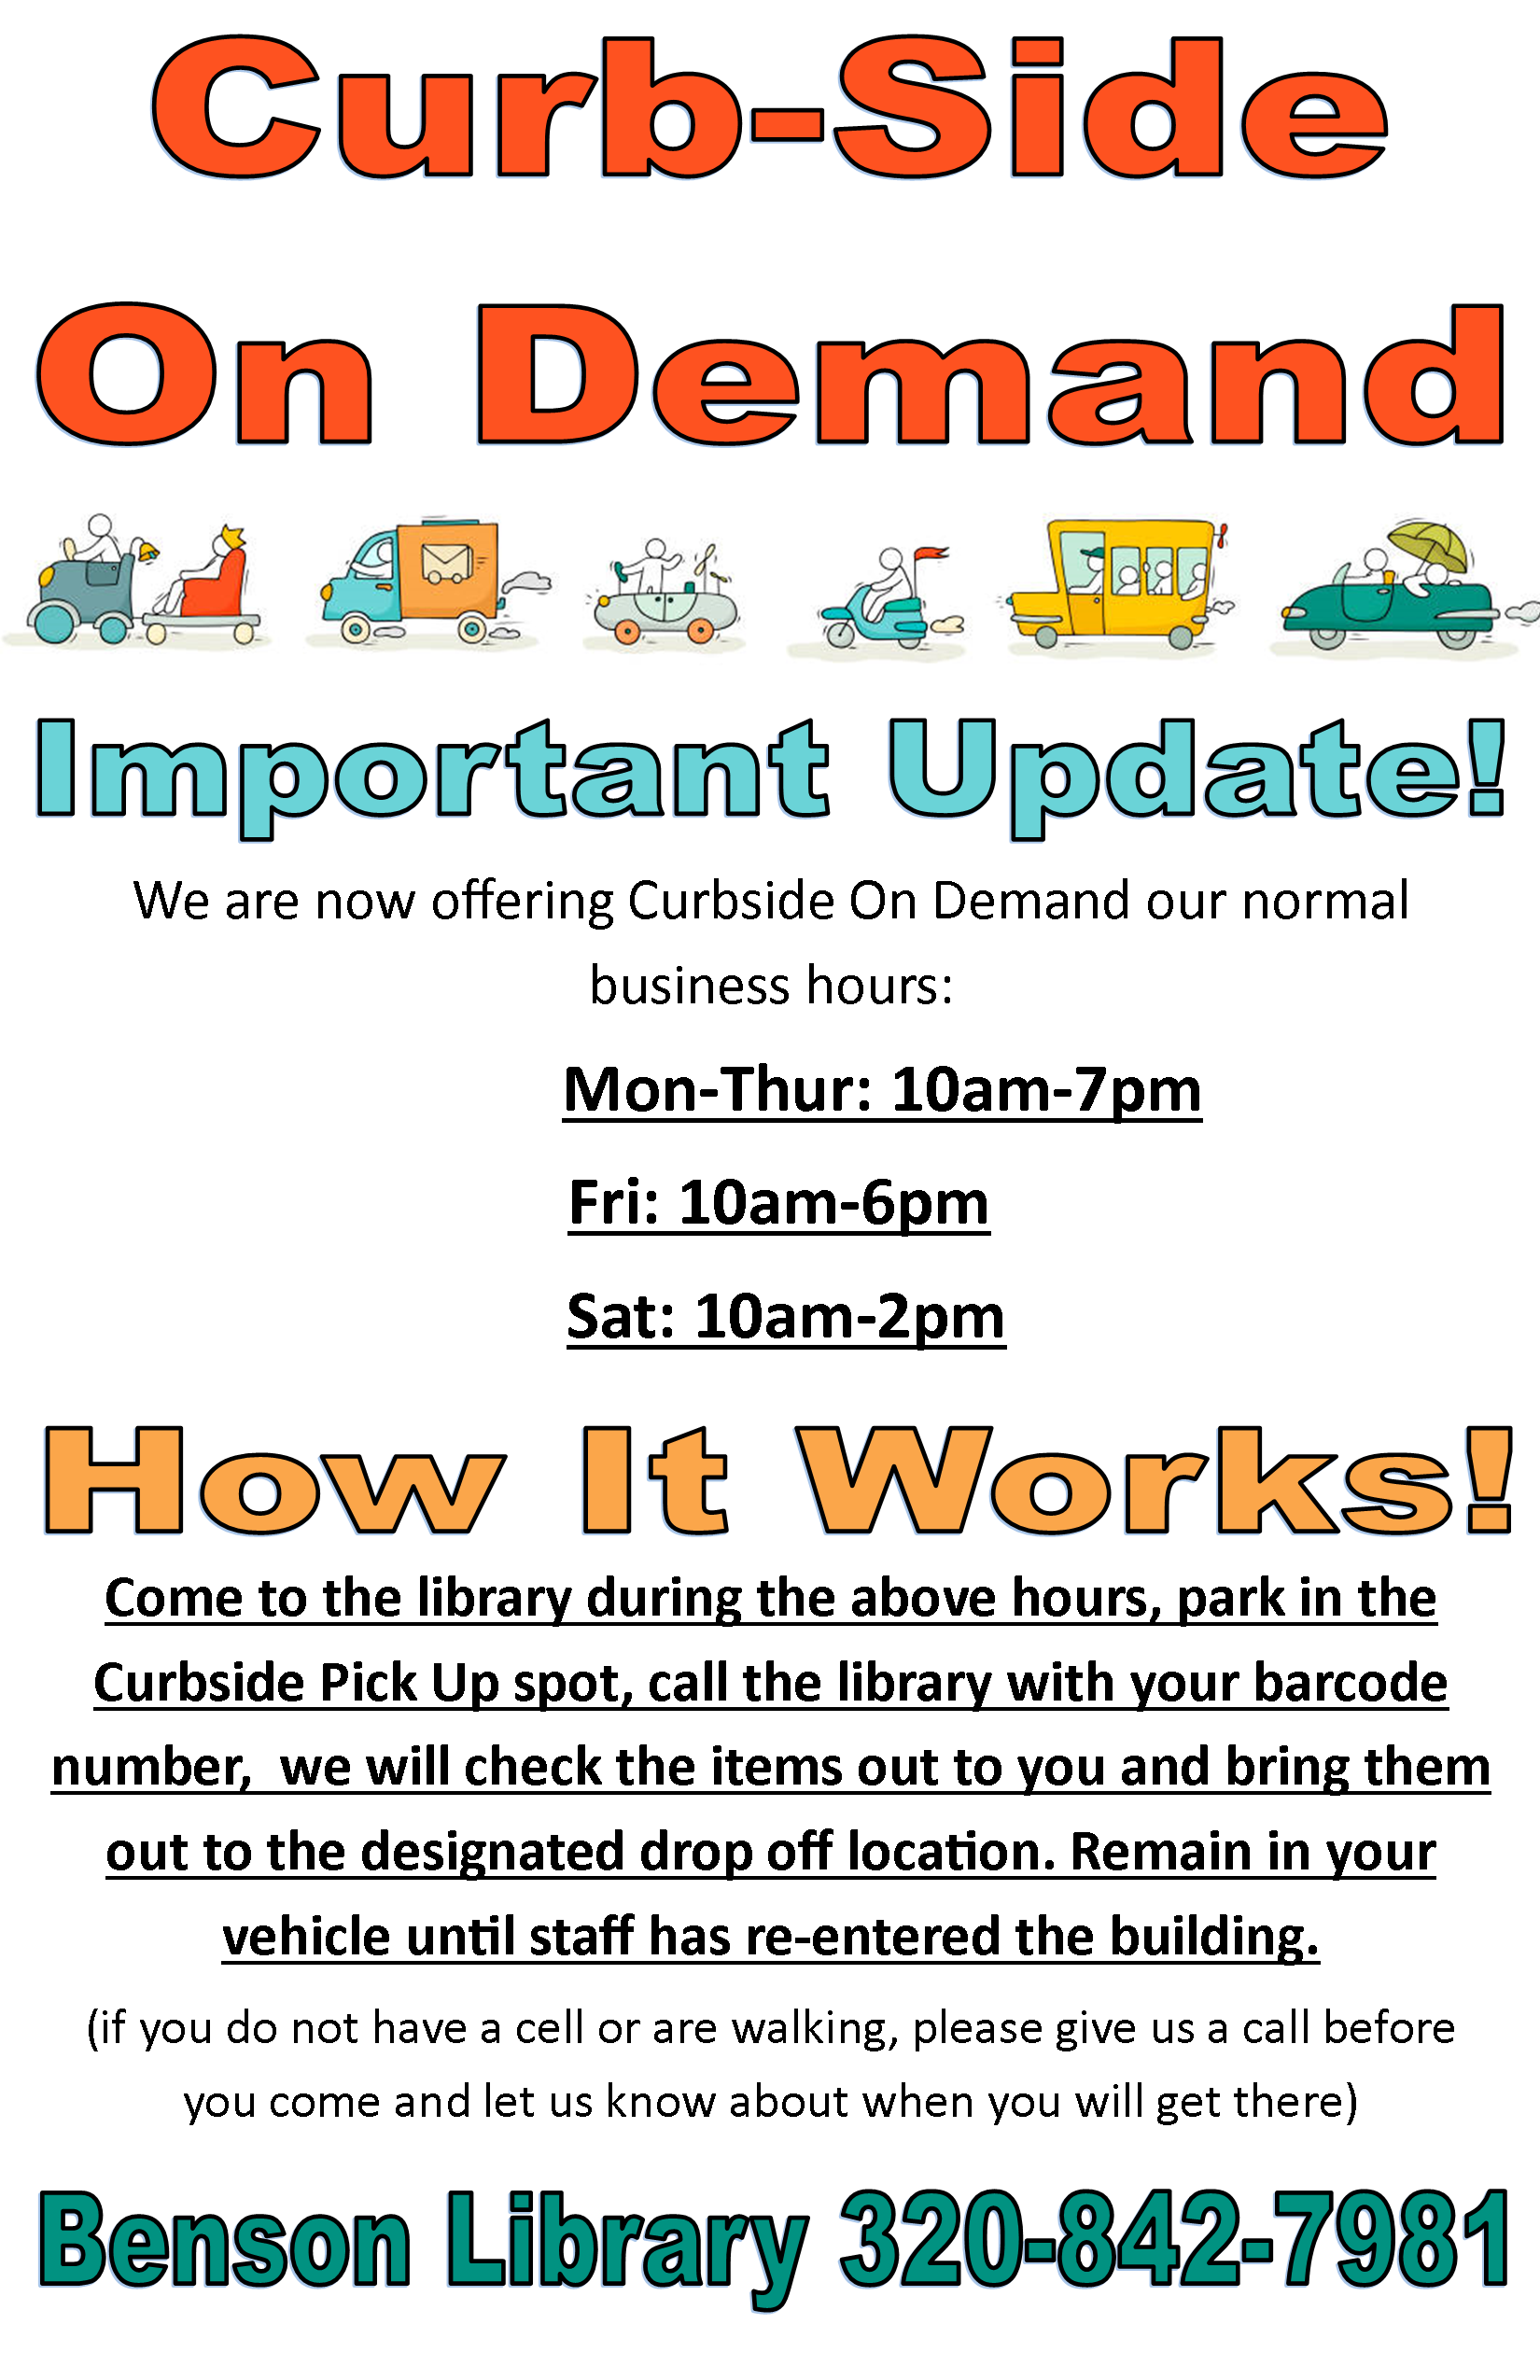 We are now offering on-demand curbside pickup during the following business hours: Monday through Thursday 10 AM-7 PM, Friday 10 AM-6 PM, and Saturday 10 AM-2 PM. You can place items on hold by calling us at 320-842-7981 or through our online catalog. No returns will be accepted at pick-up and no fines will be collected. All returns must be put in the dropbox. We are not accepting donations at this time. Please do not use curbside pickup if you are feeling sick.